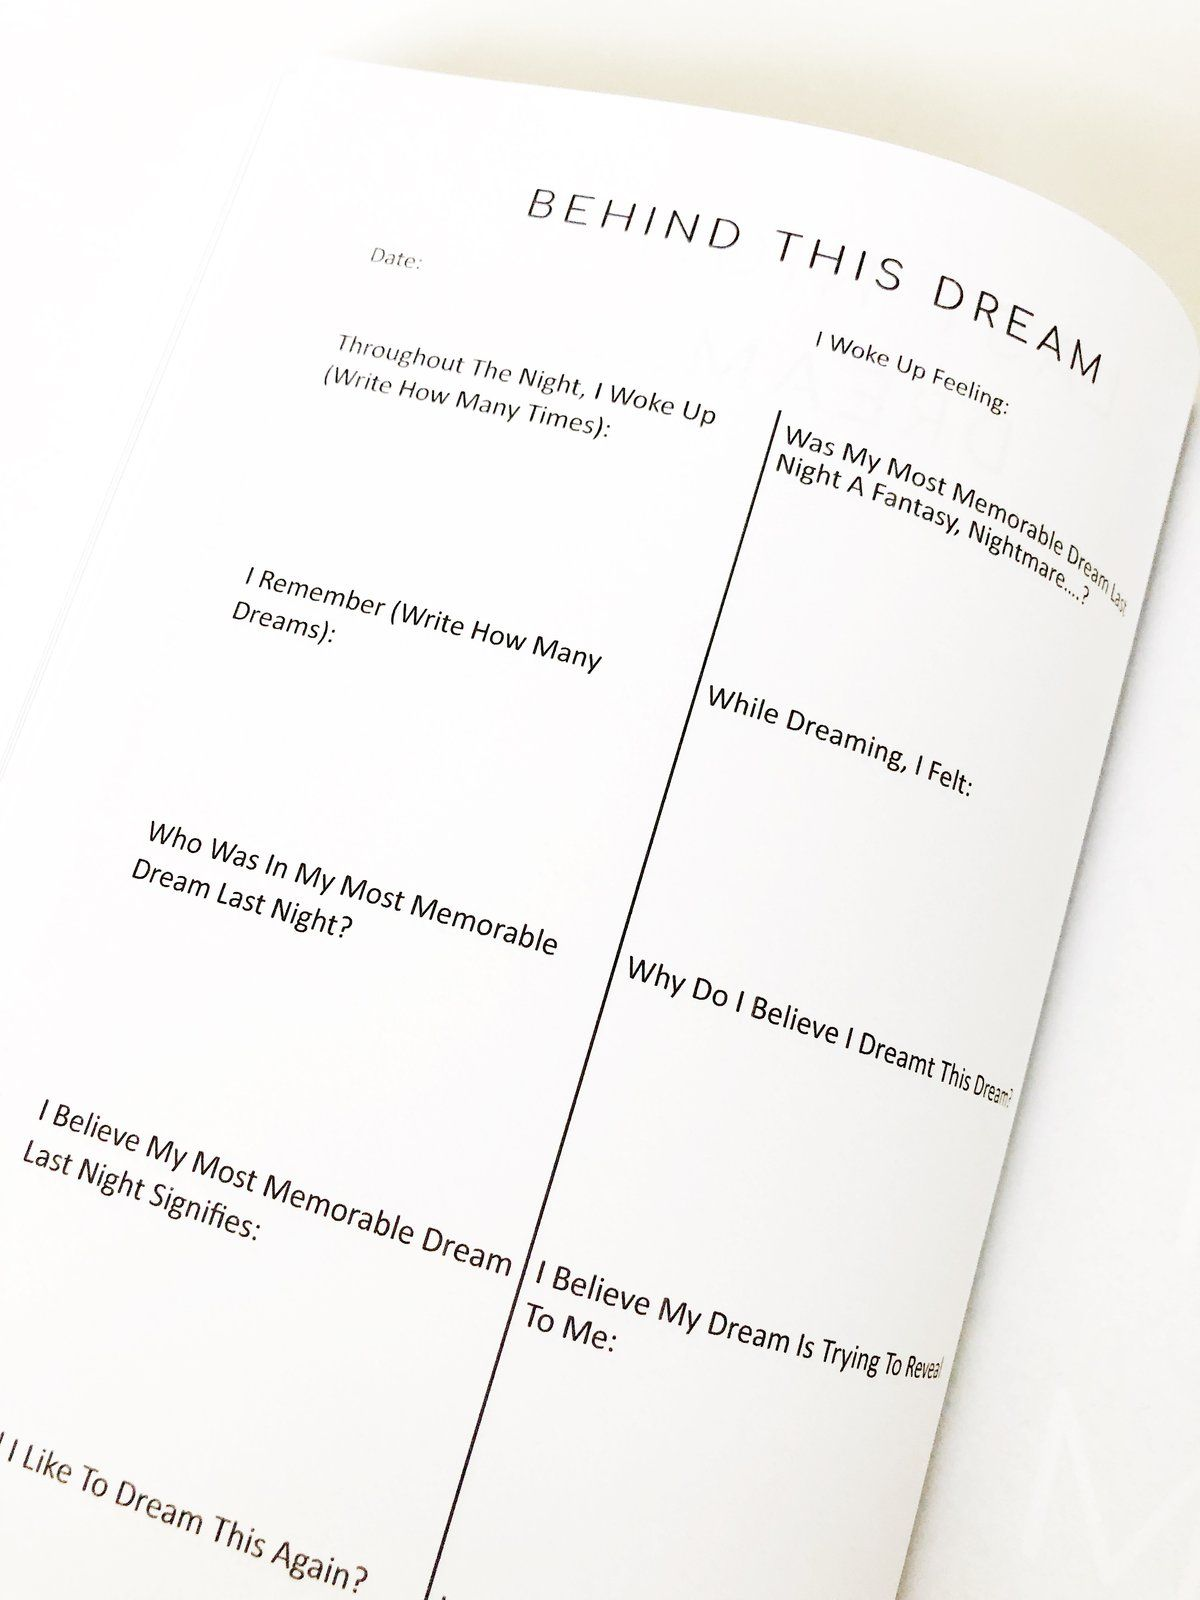 With My Dreams Journal Dream Journal Dream Journal How To Memorize Things Writing Motivation